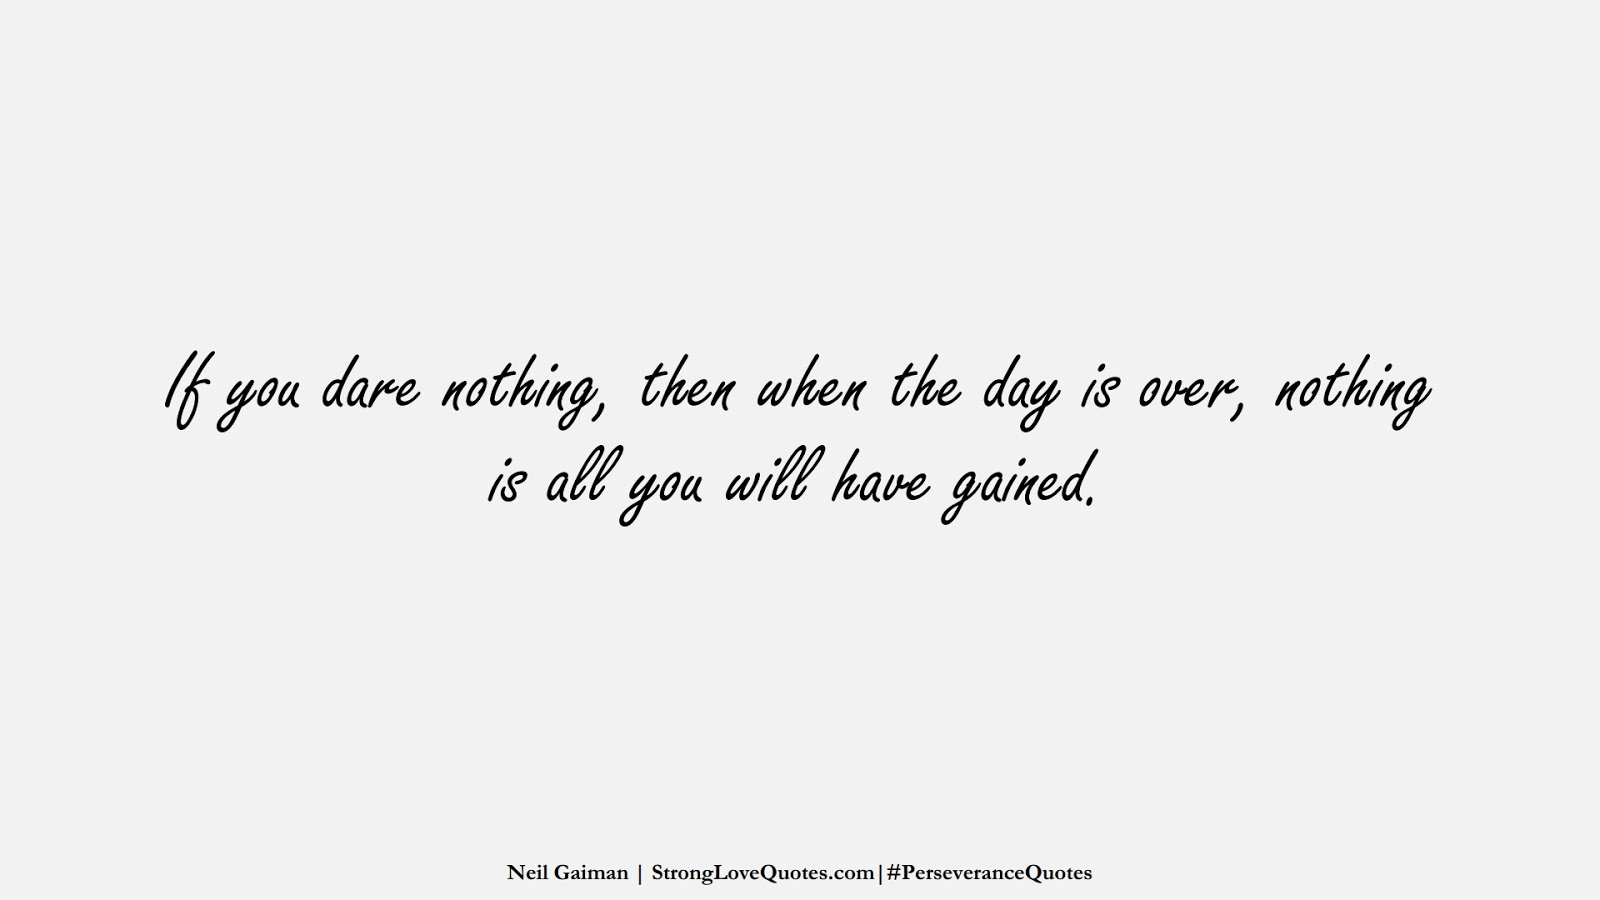 If you dare nothing, then when the day is over, nothing is all you will have gained. (Neil Gaiman);  #PerseveranceQuotes